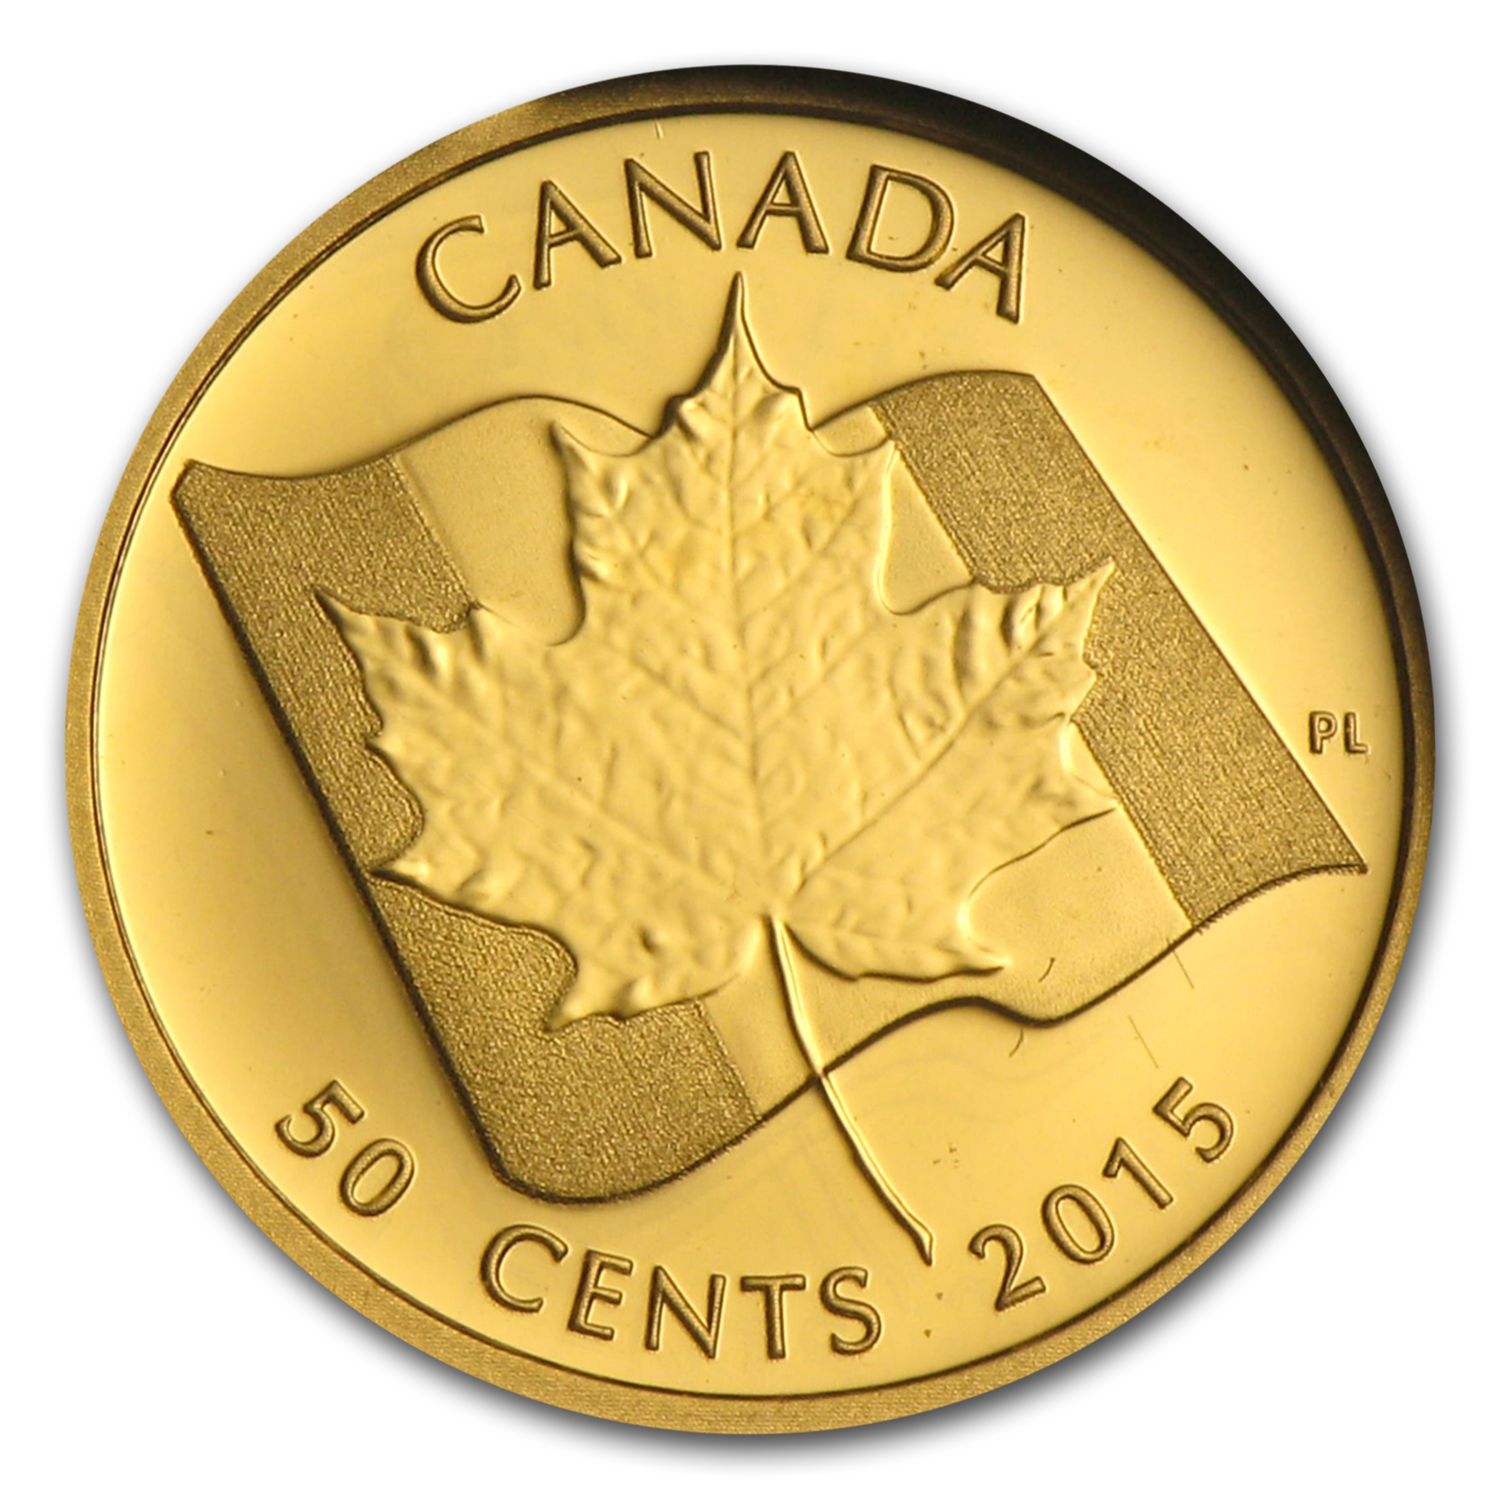 2015 Canada 1/25 oz Proof Gold $0.50 Maple Leaf